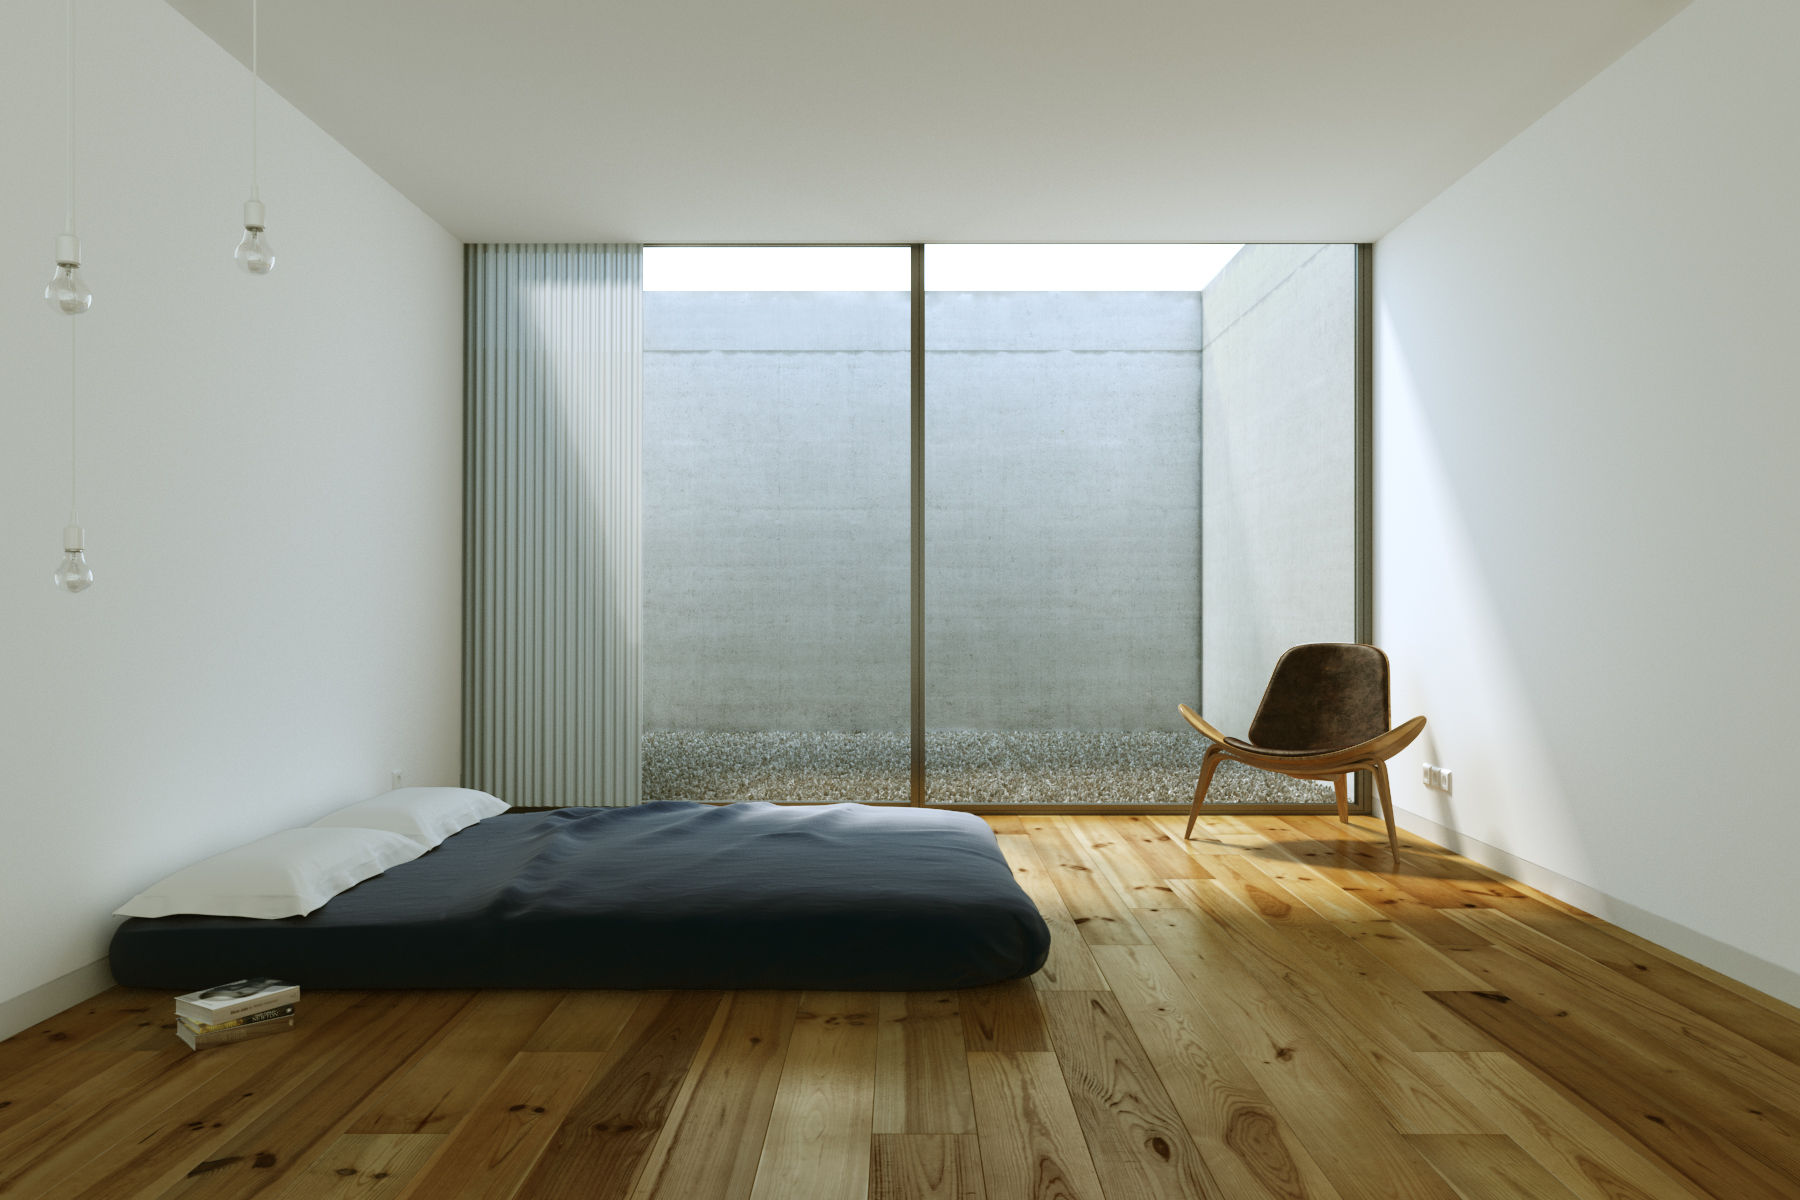 25 beautifully simple rooms that take minimalism to the ... on Minimalist Room Design  id=87571